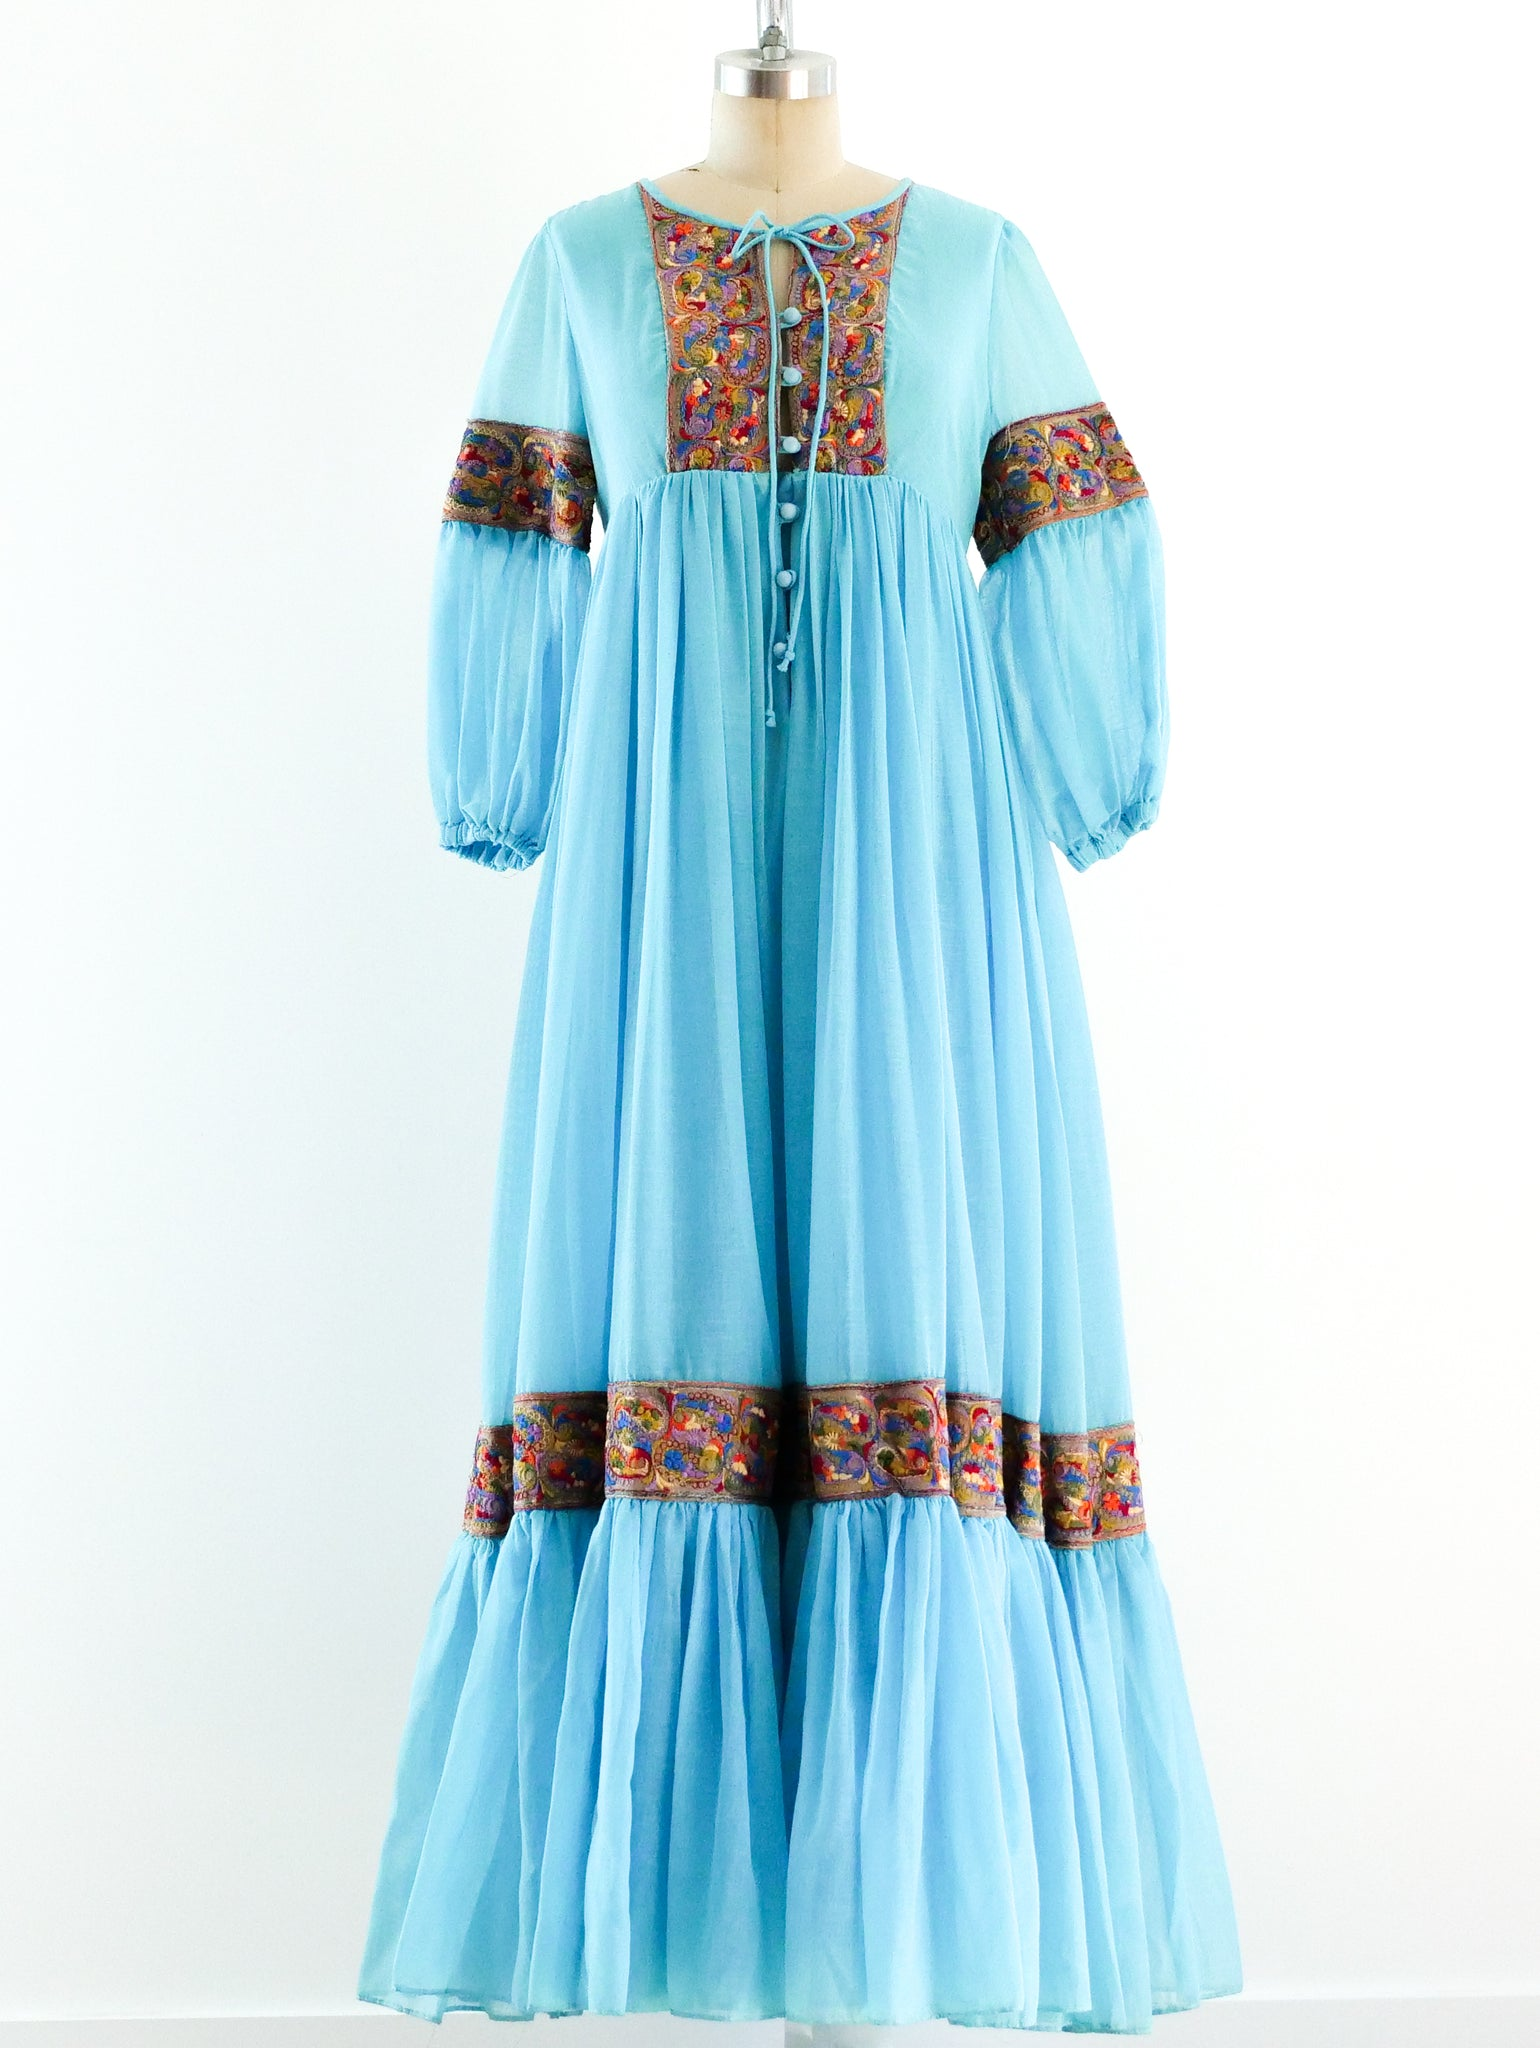 Turquoise Embroidered Trapeze Dress